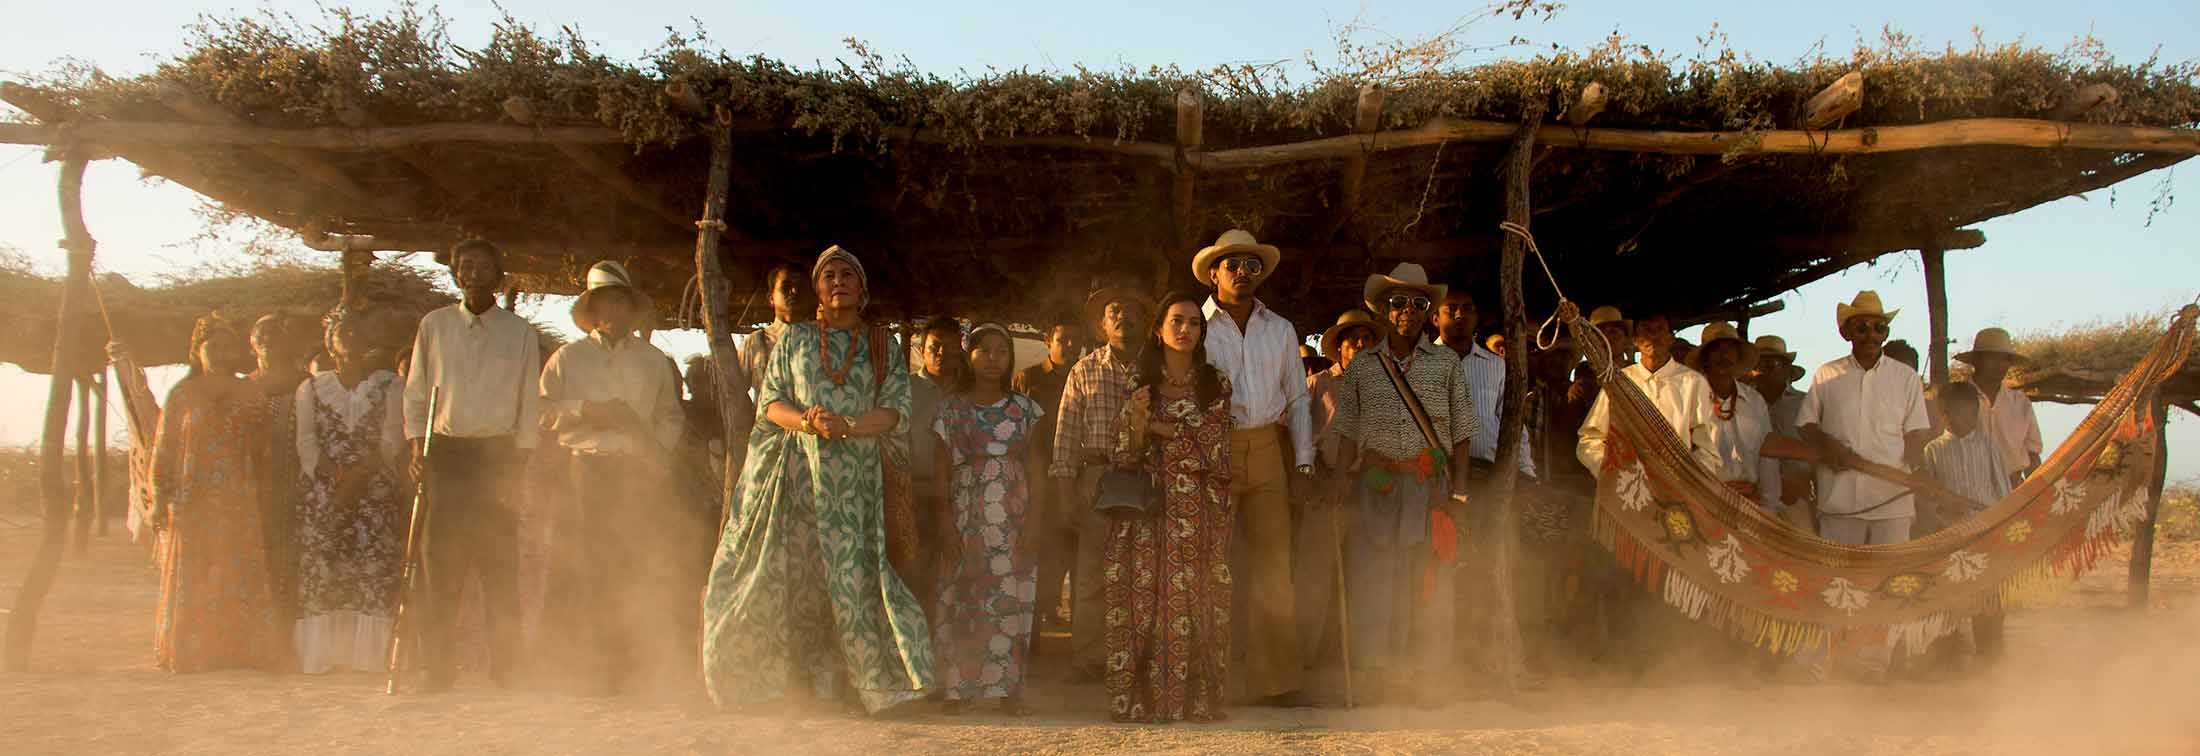 Birds of Passage - A visually stunning, narcotised gangster epic